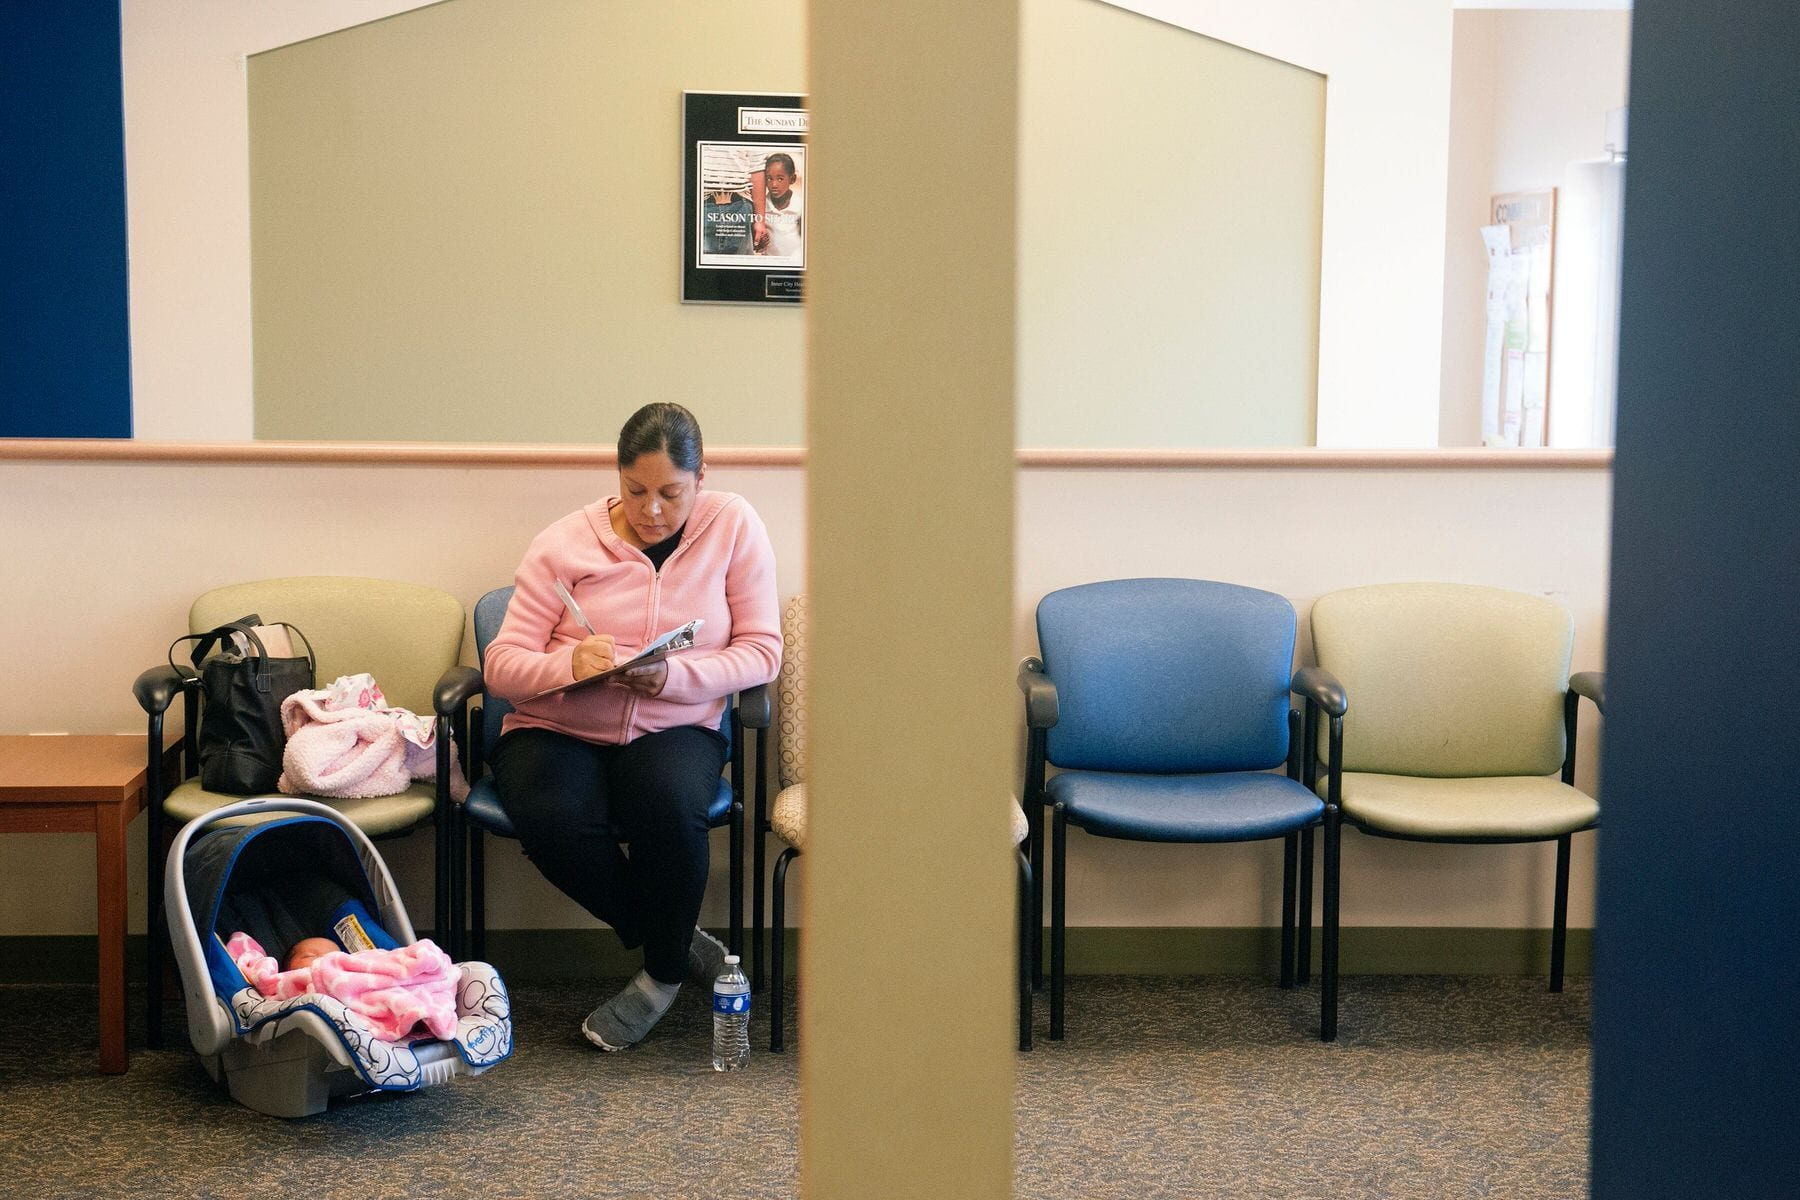 A woman fills out paperwork prior to a checkup with her 5-day old daughter.